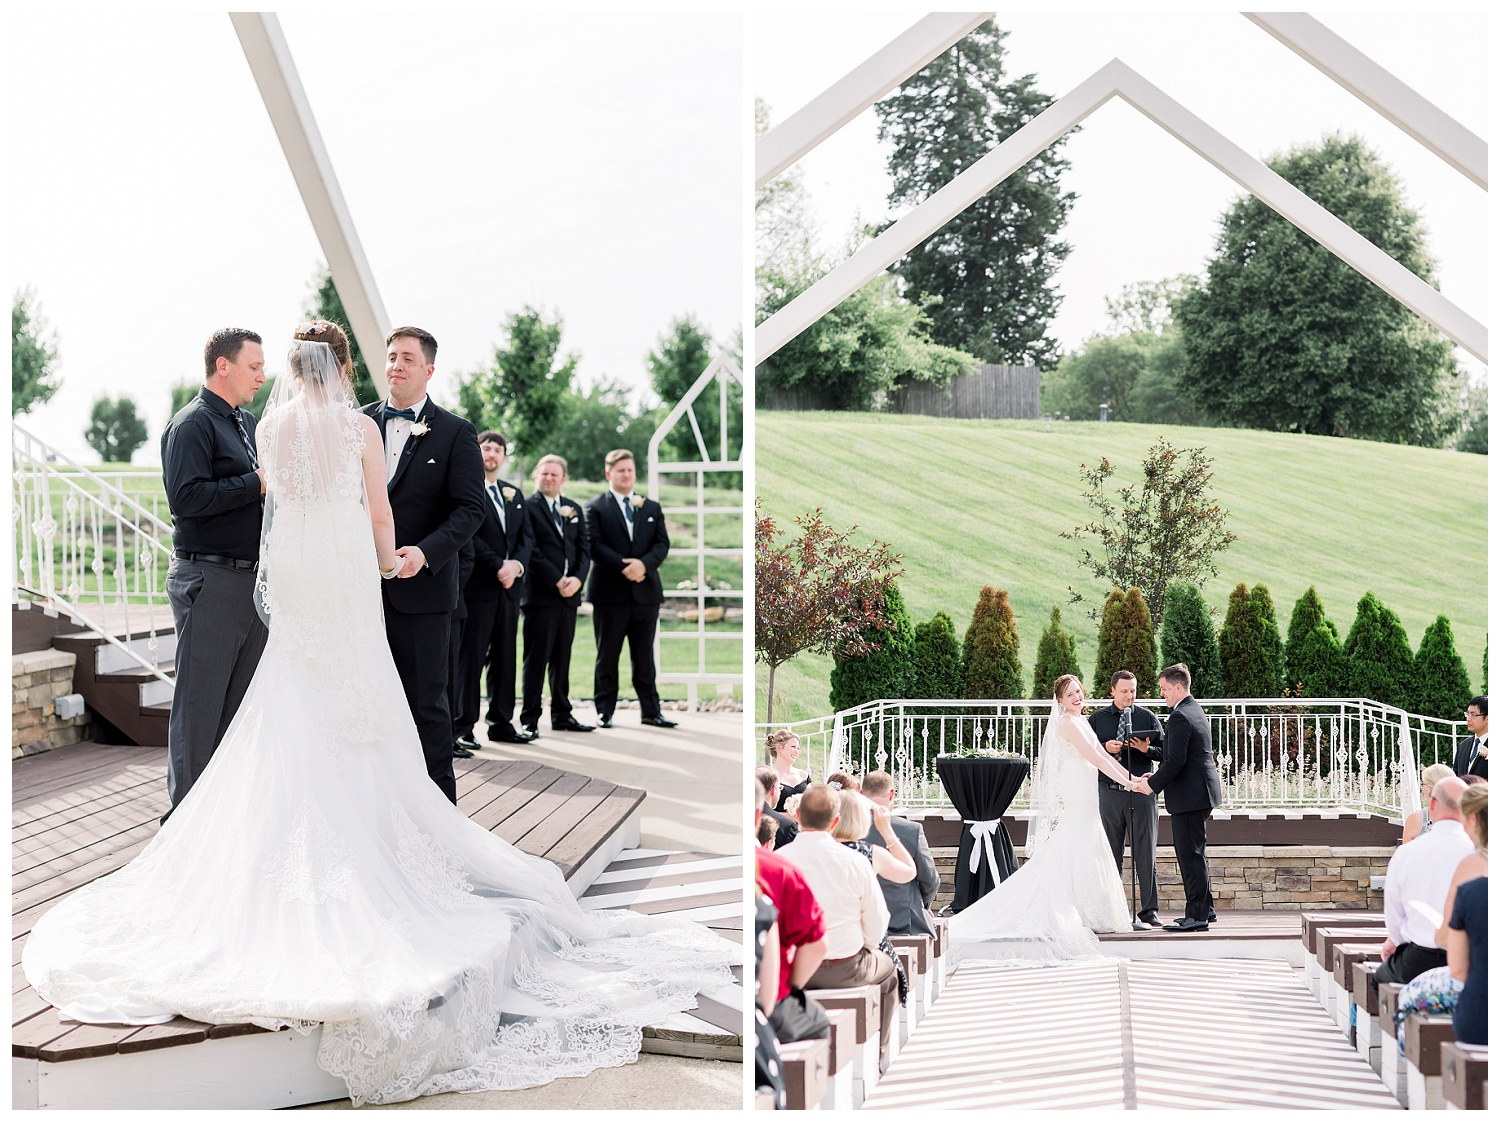 Wedding Photography at The Pavilion